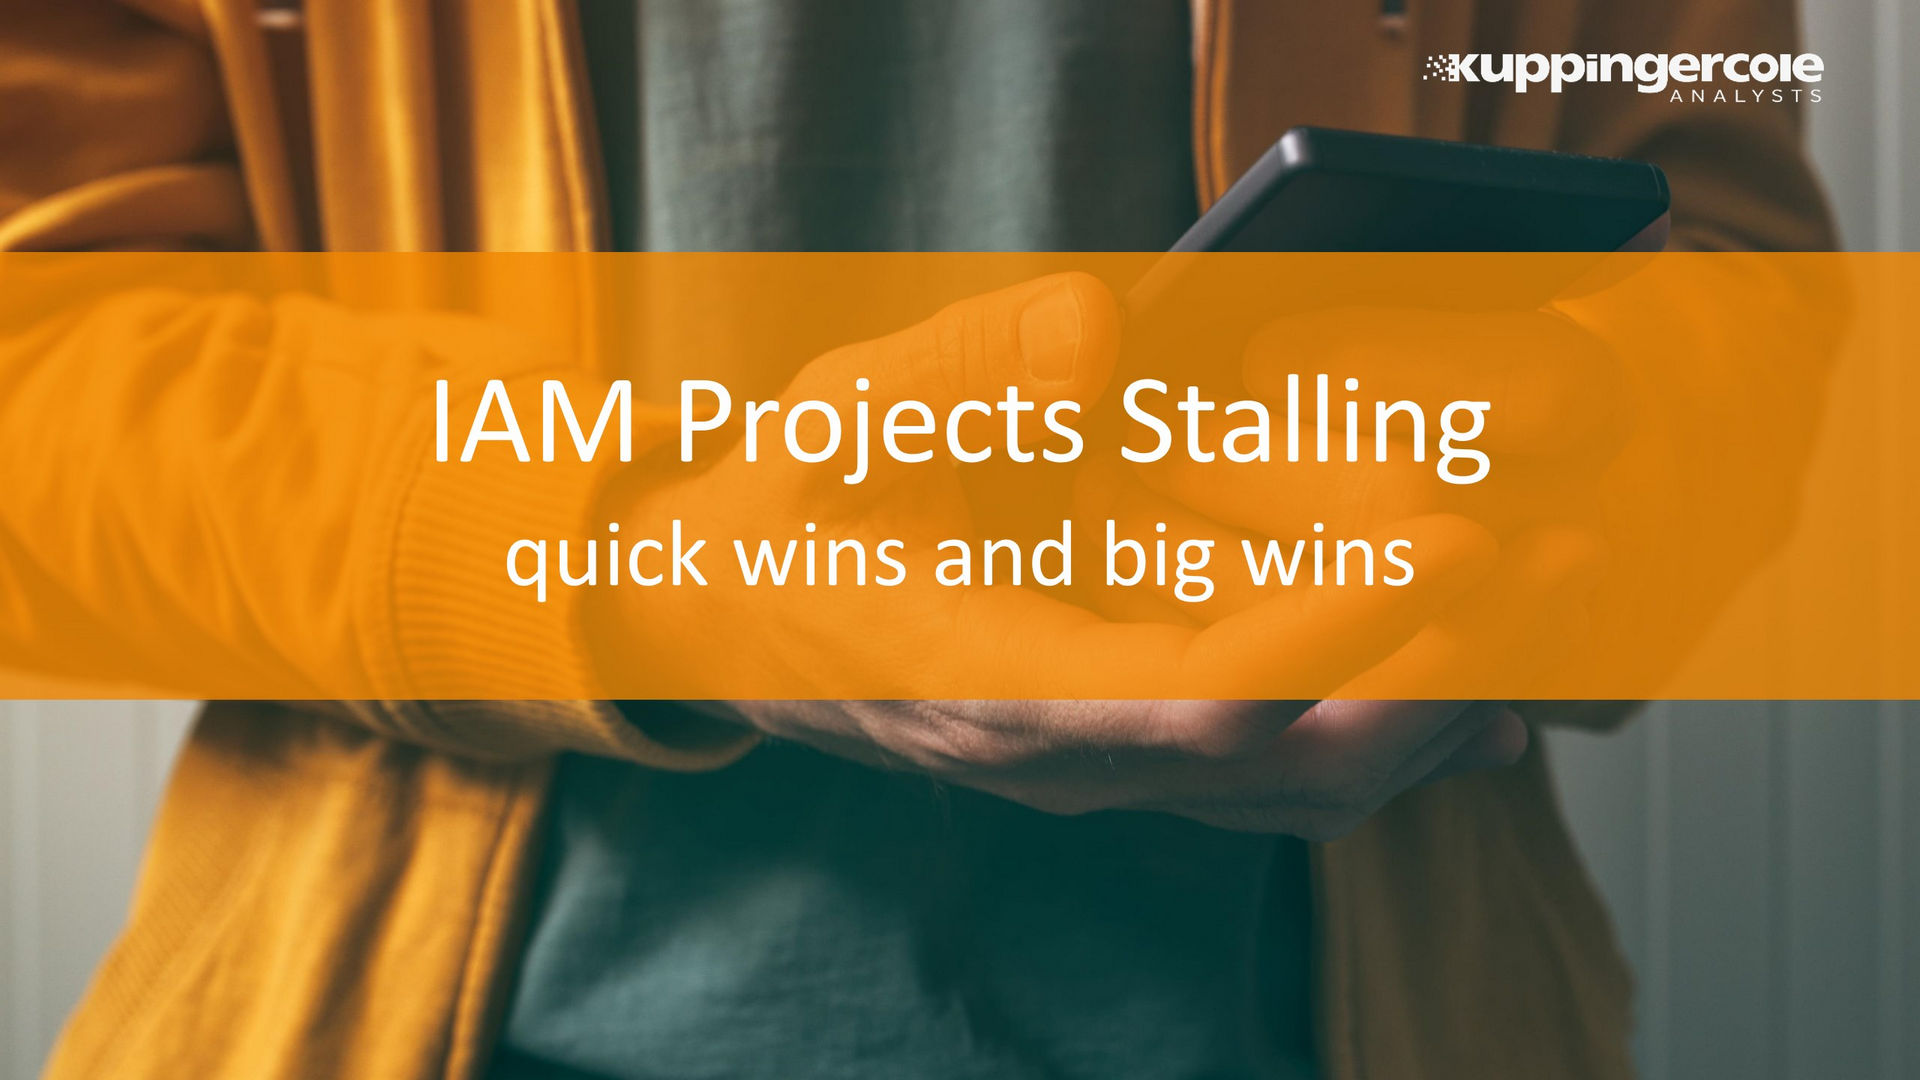 IAM Projects Stalling - Quick Wins and Big Wins